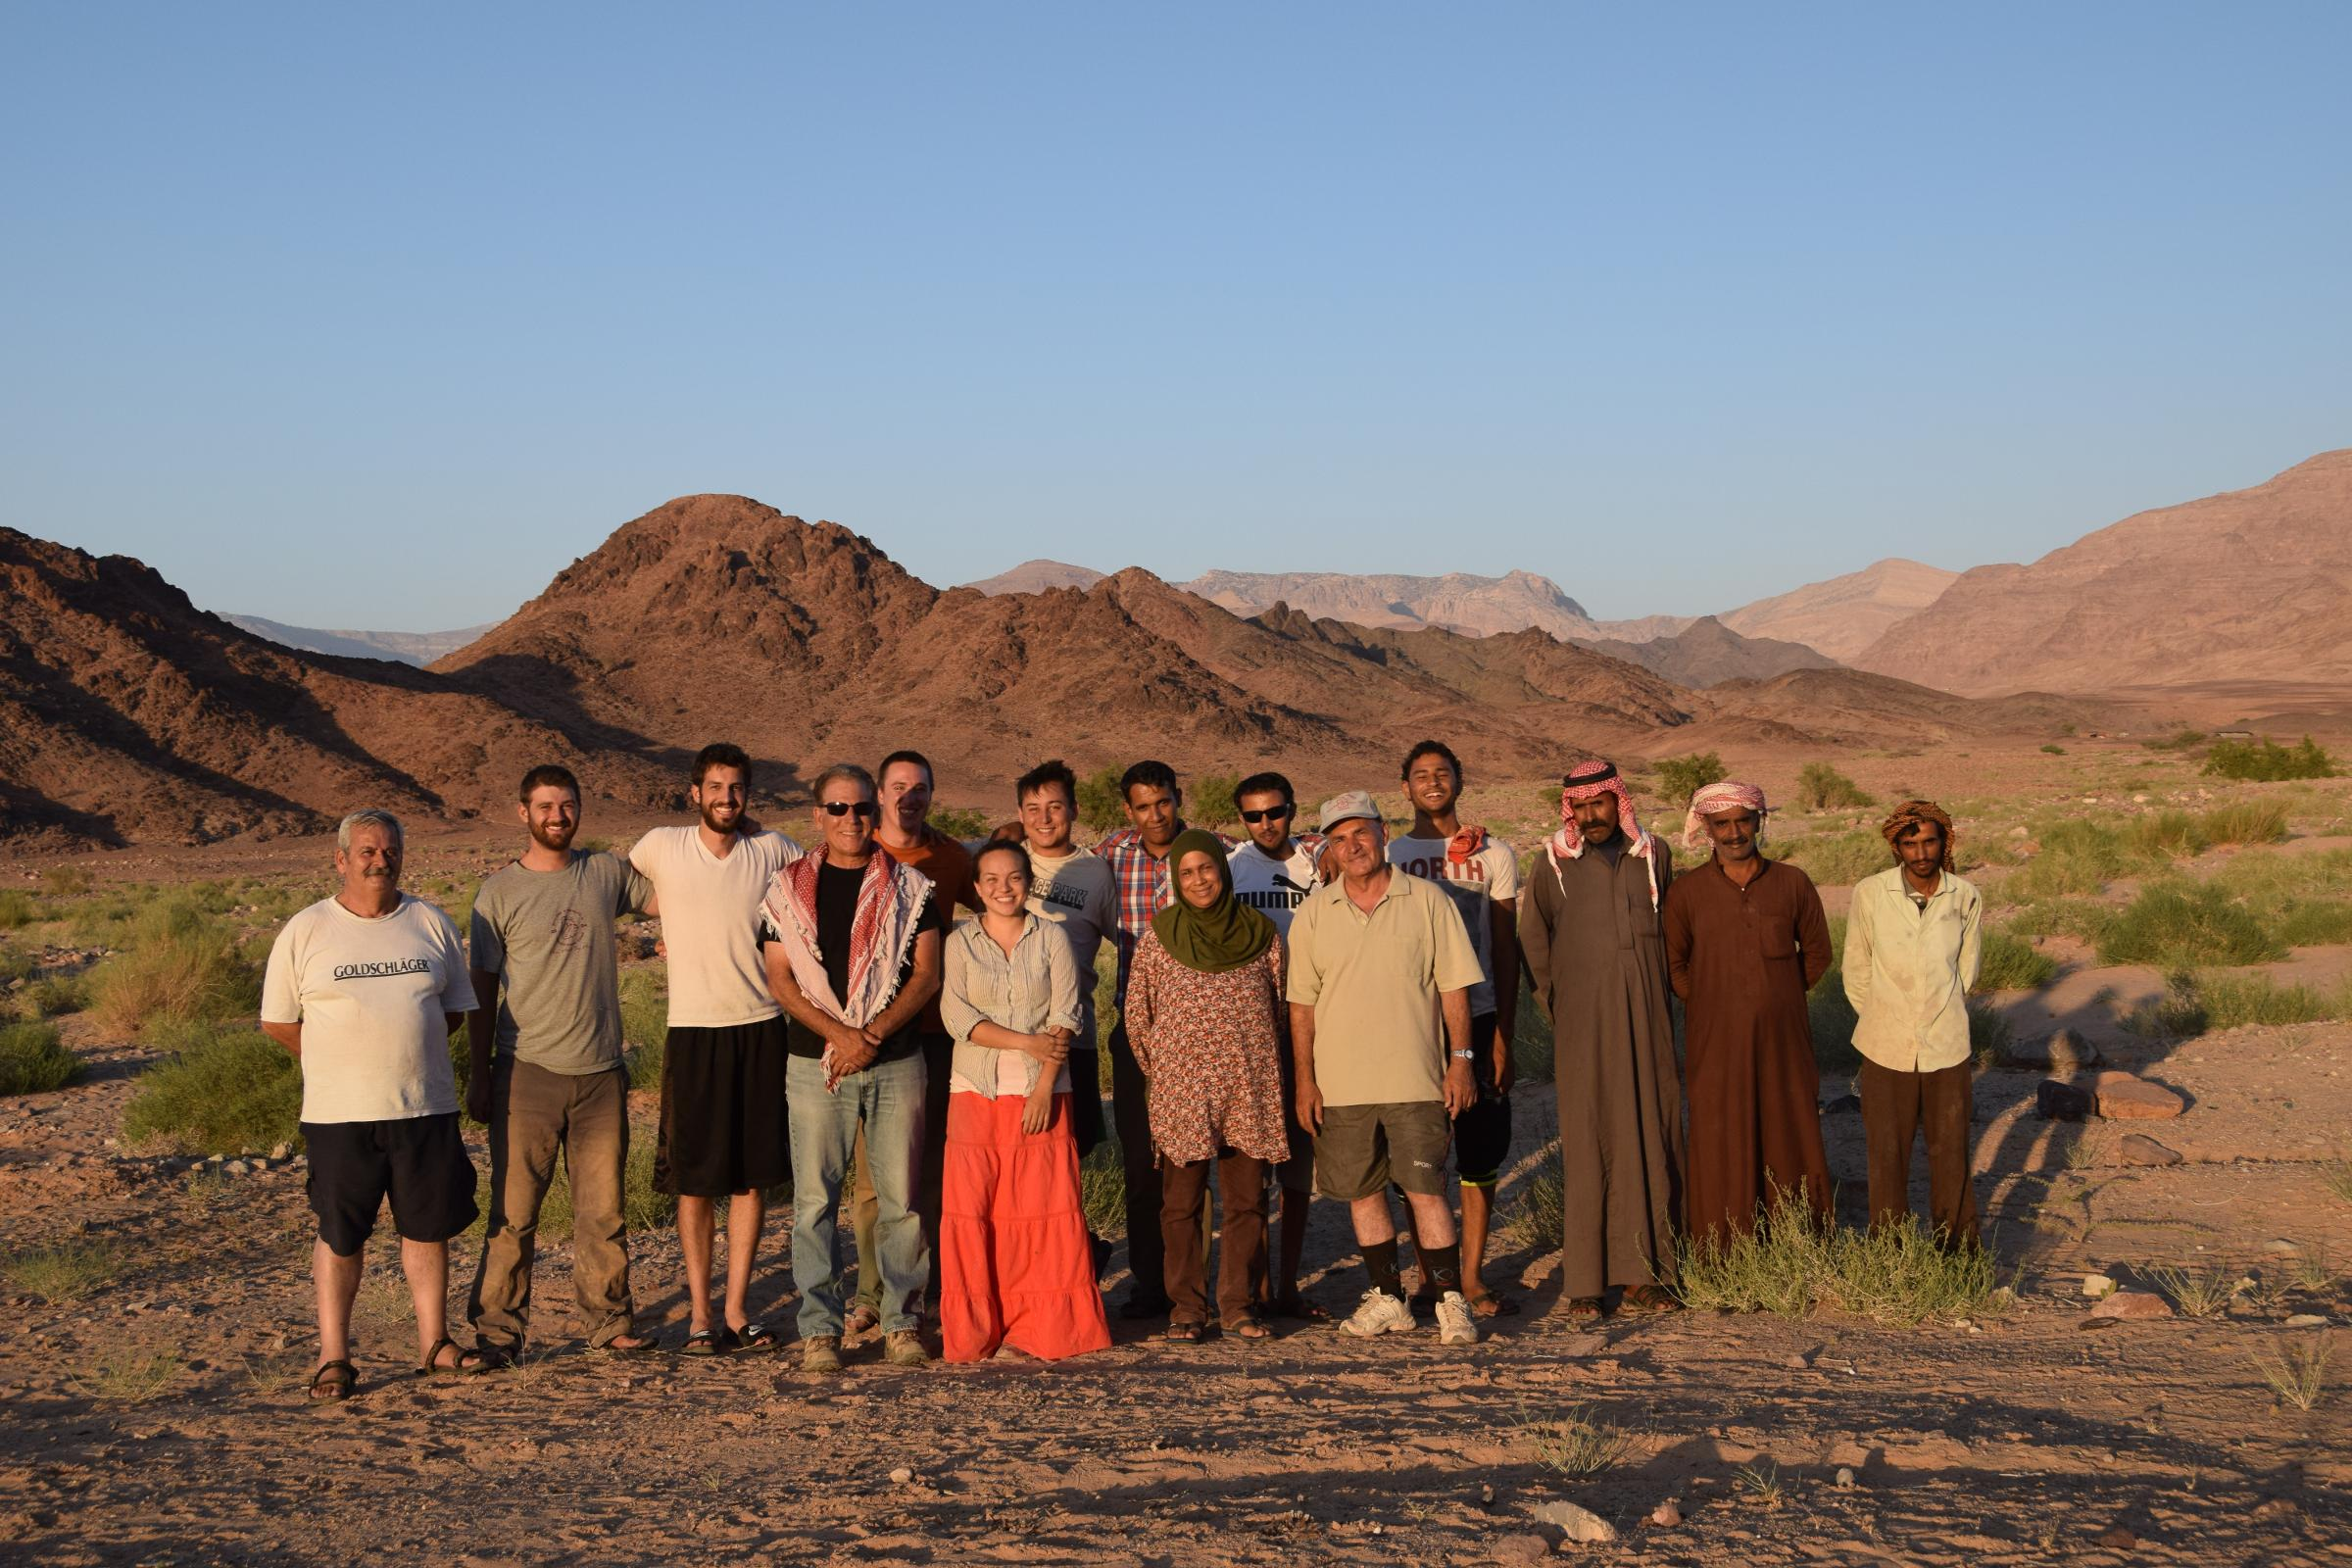 Members of the Edom Lowlands Regional Archaeology Project or ELRAP team